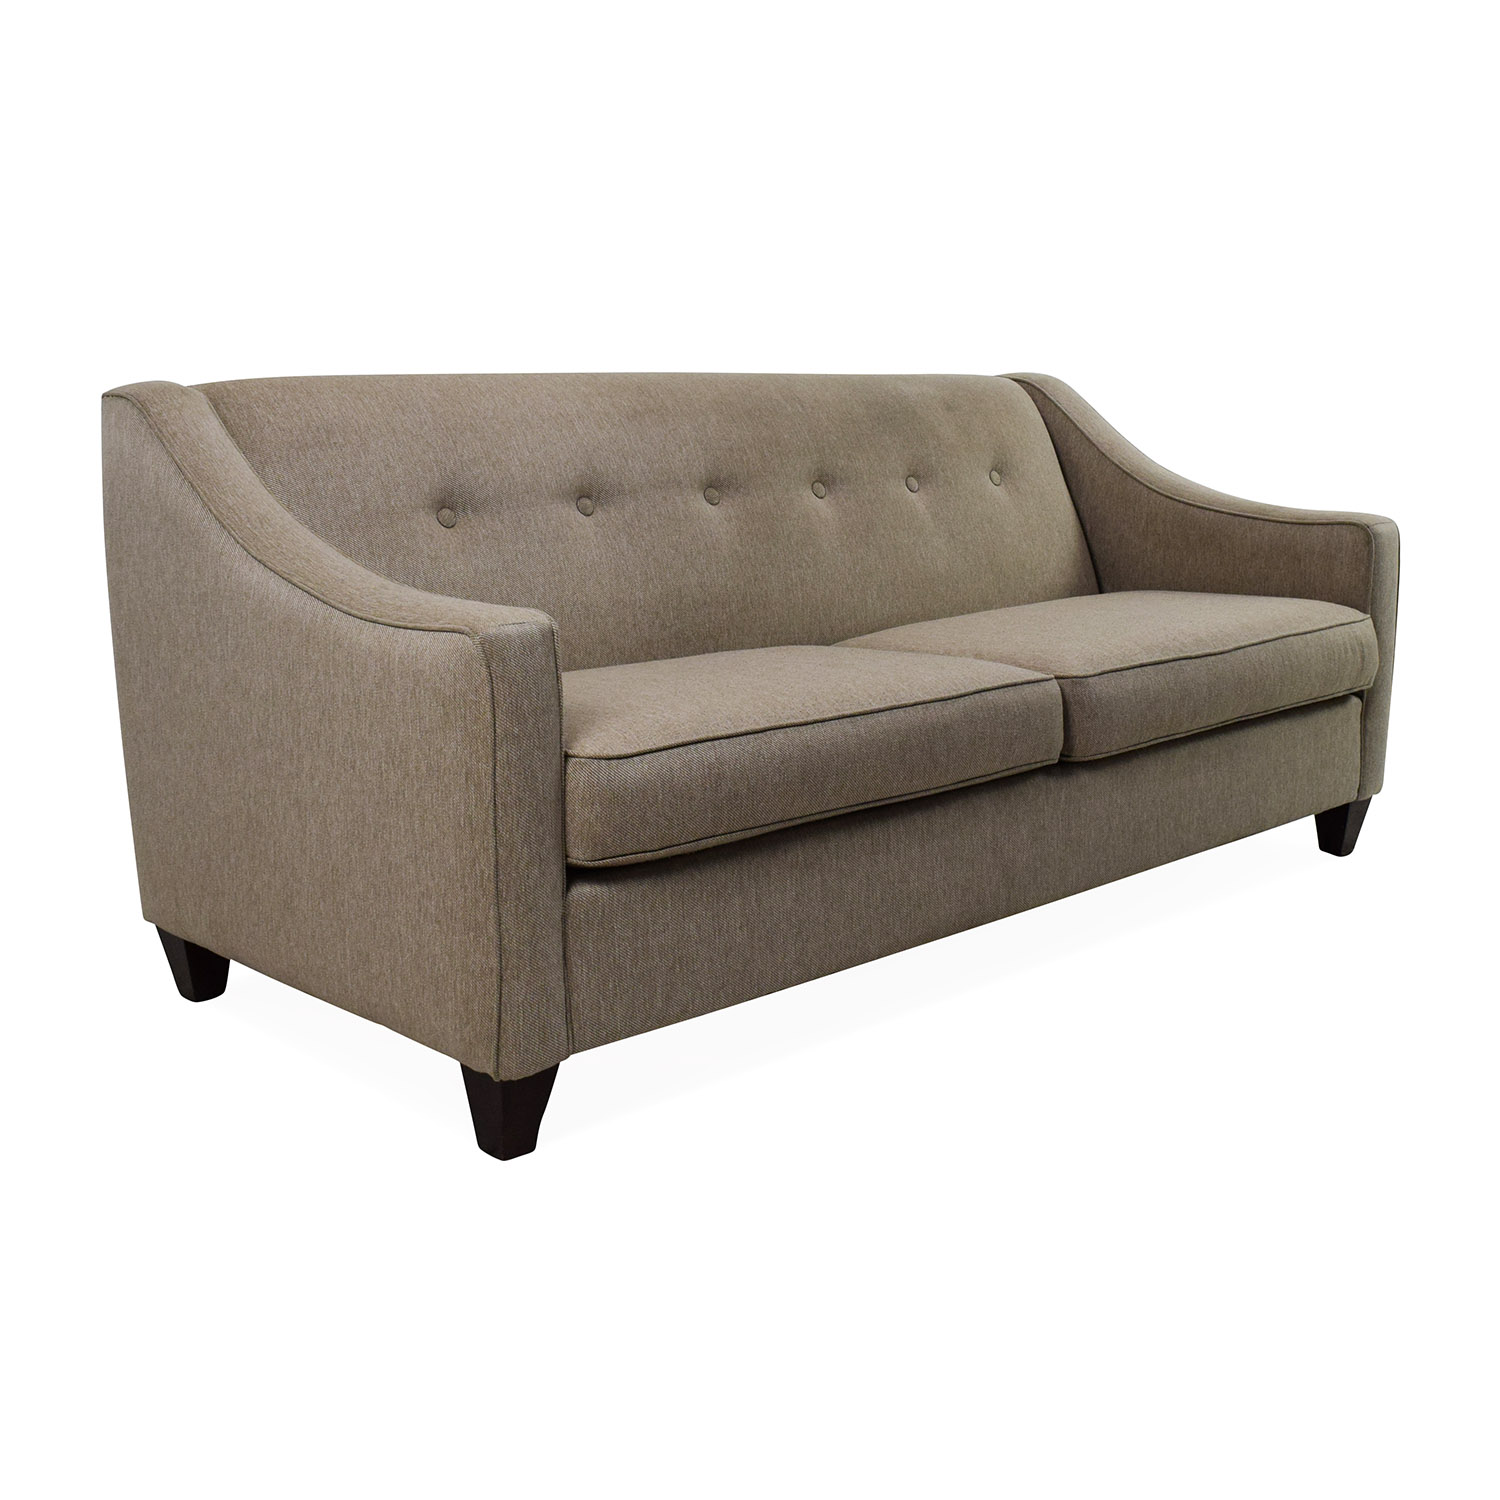 Raymour And Flanigan Ashton Sofa Dimensions